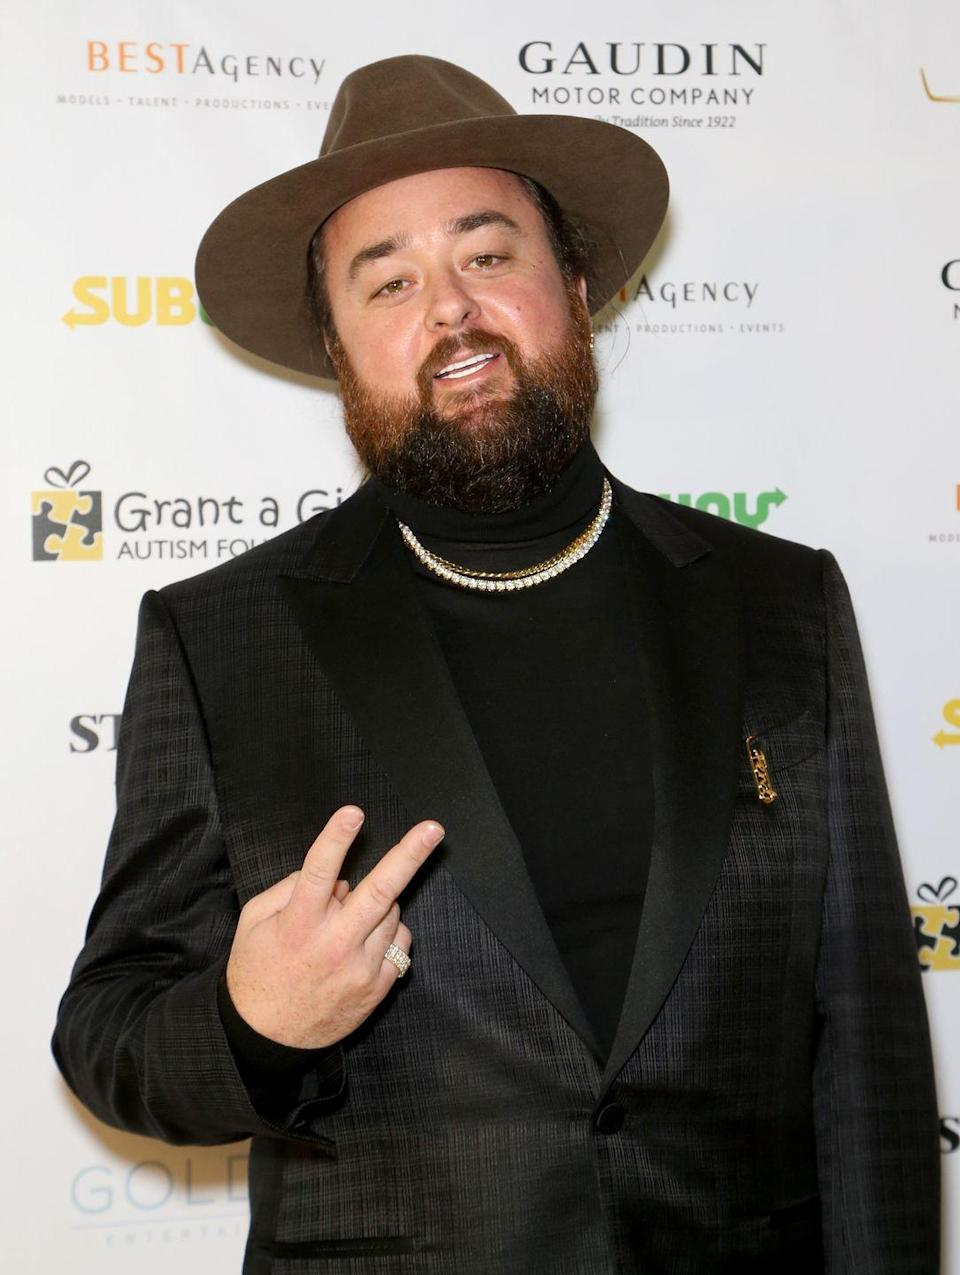 """<p> """"It was time for me to get healthy,"""" Austin told <em><a href=""""https://people.com/tv/pawn-stars-corey-harrison-192-pound-weight-loss/"""" rel=""""nofollow noopener"""" target=""""_blank"""" data-ylk=""""slk:People"""" class=""""link rapid-noclick-resp"""">People</a></em>. """"I started at 320 pounds and now I'm down to 225. When I first began, I eliminated all processed foods except mustard. Now, 'everything in moderation' is my motto.""""</p>"""